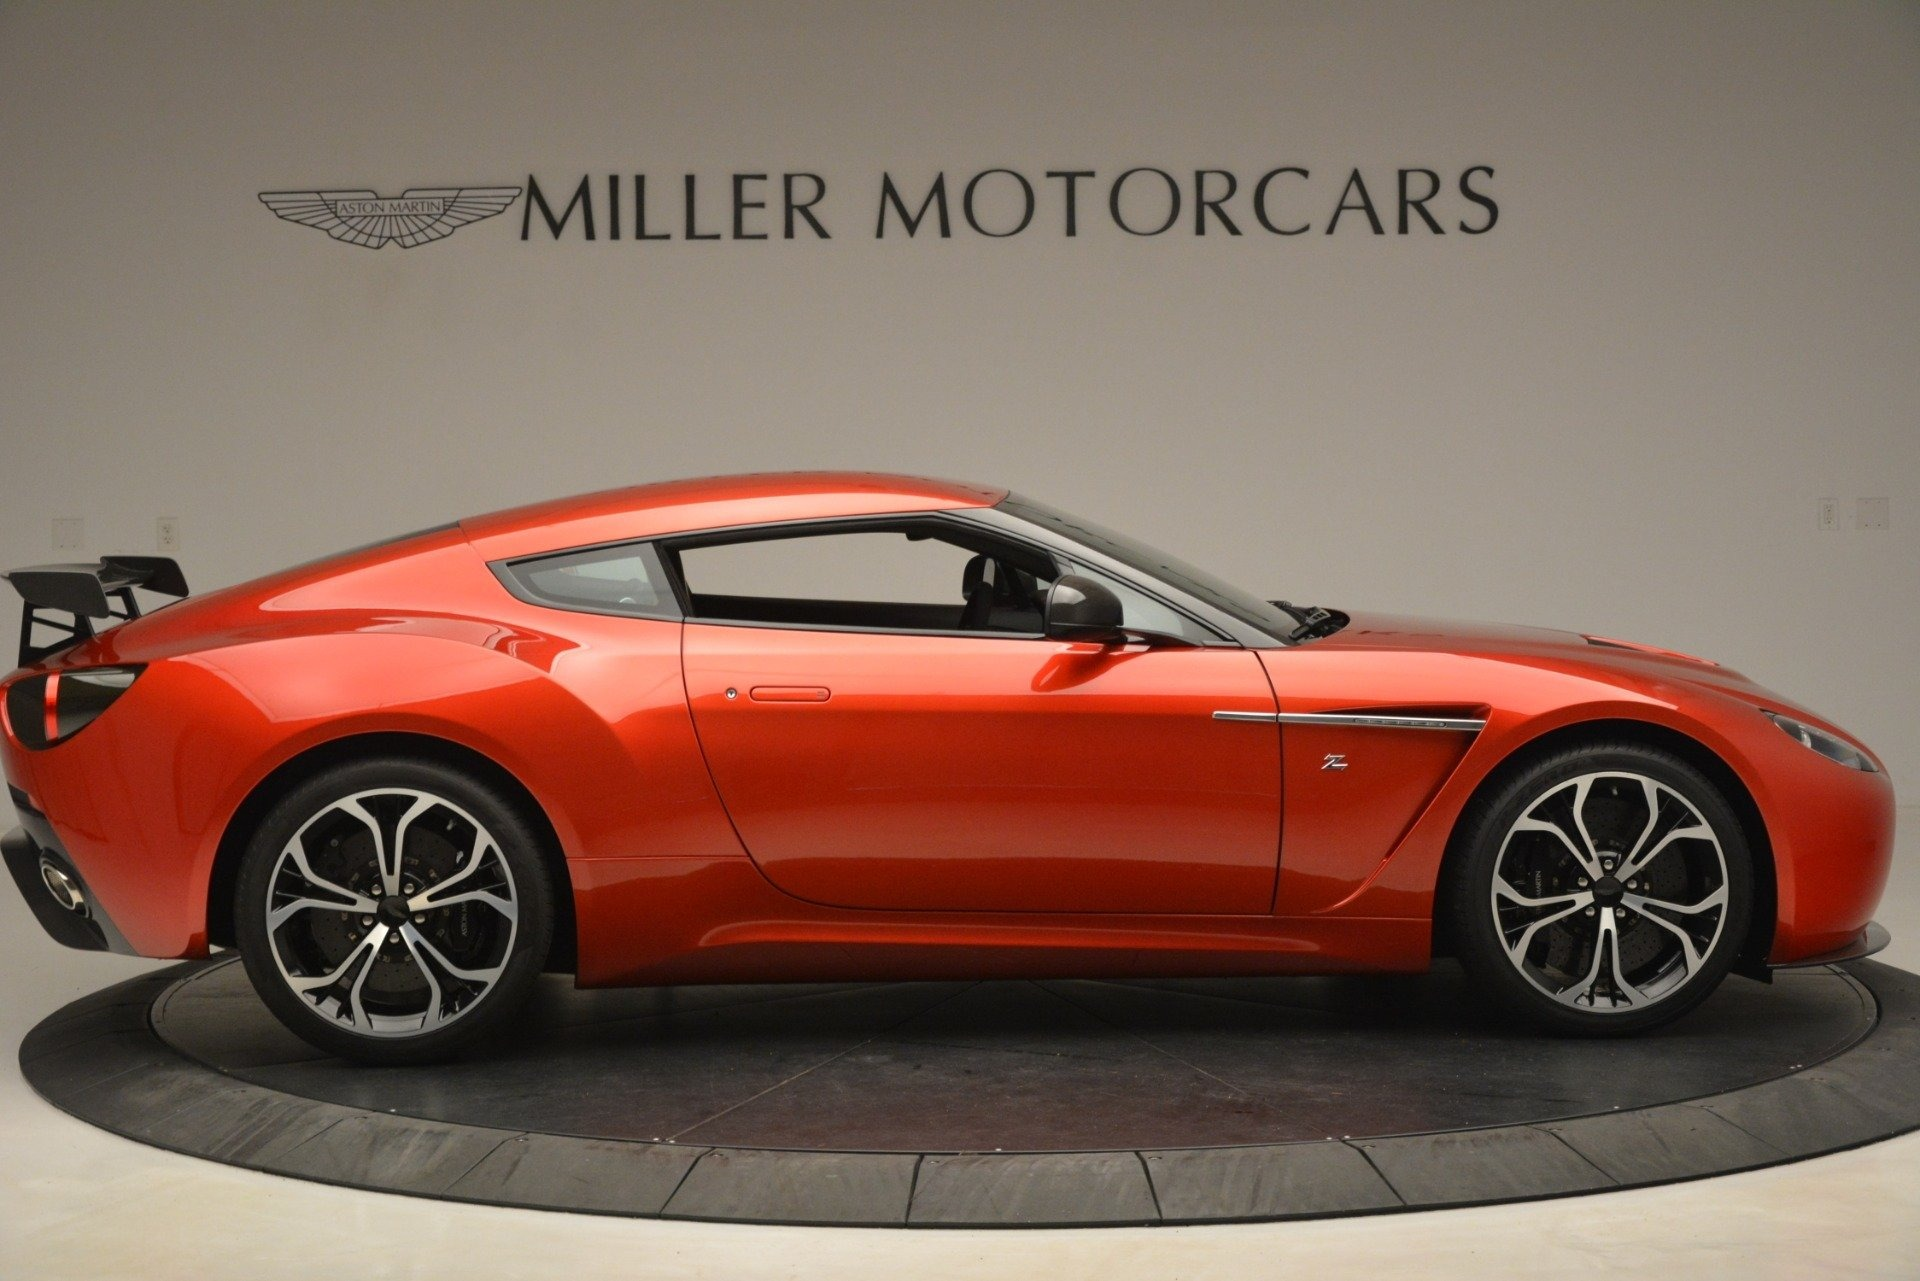 Used 2013 Aston Martin V12 Zagato Coupe For Sale In Westport, CT 3181_p7